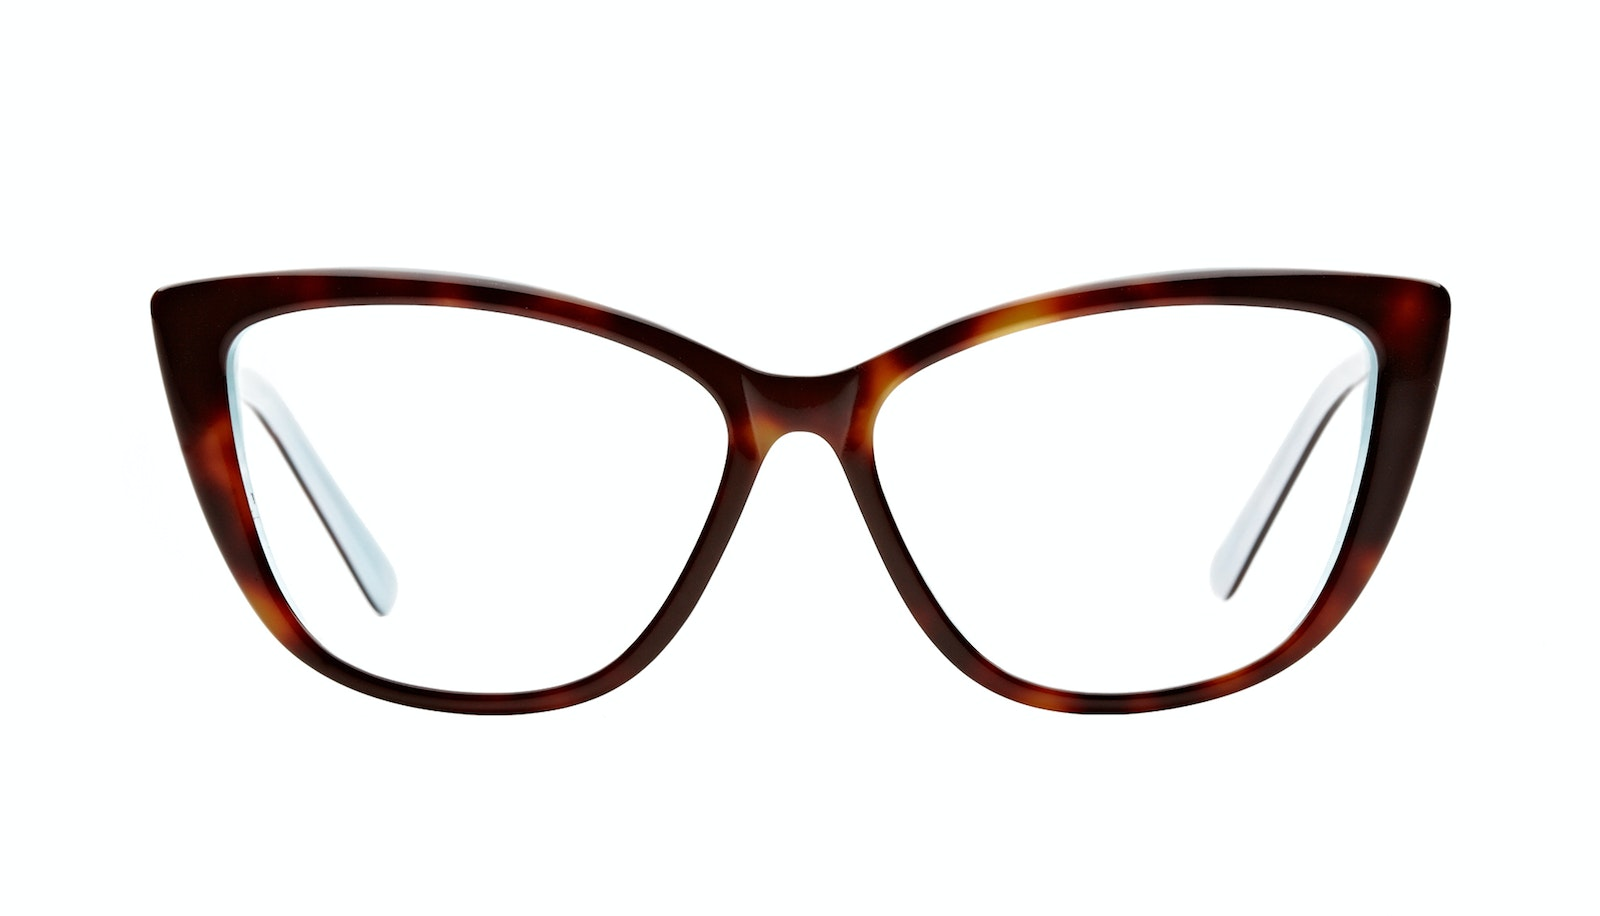 Affordable Fashion Glasses Cat Eye Daring Cateye Eyeglasses Women Dolled Up Dreamy Tortoise